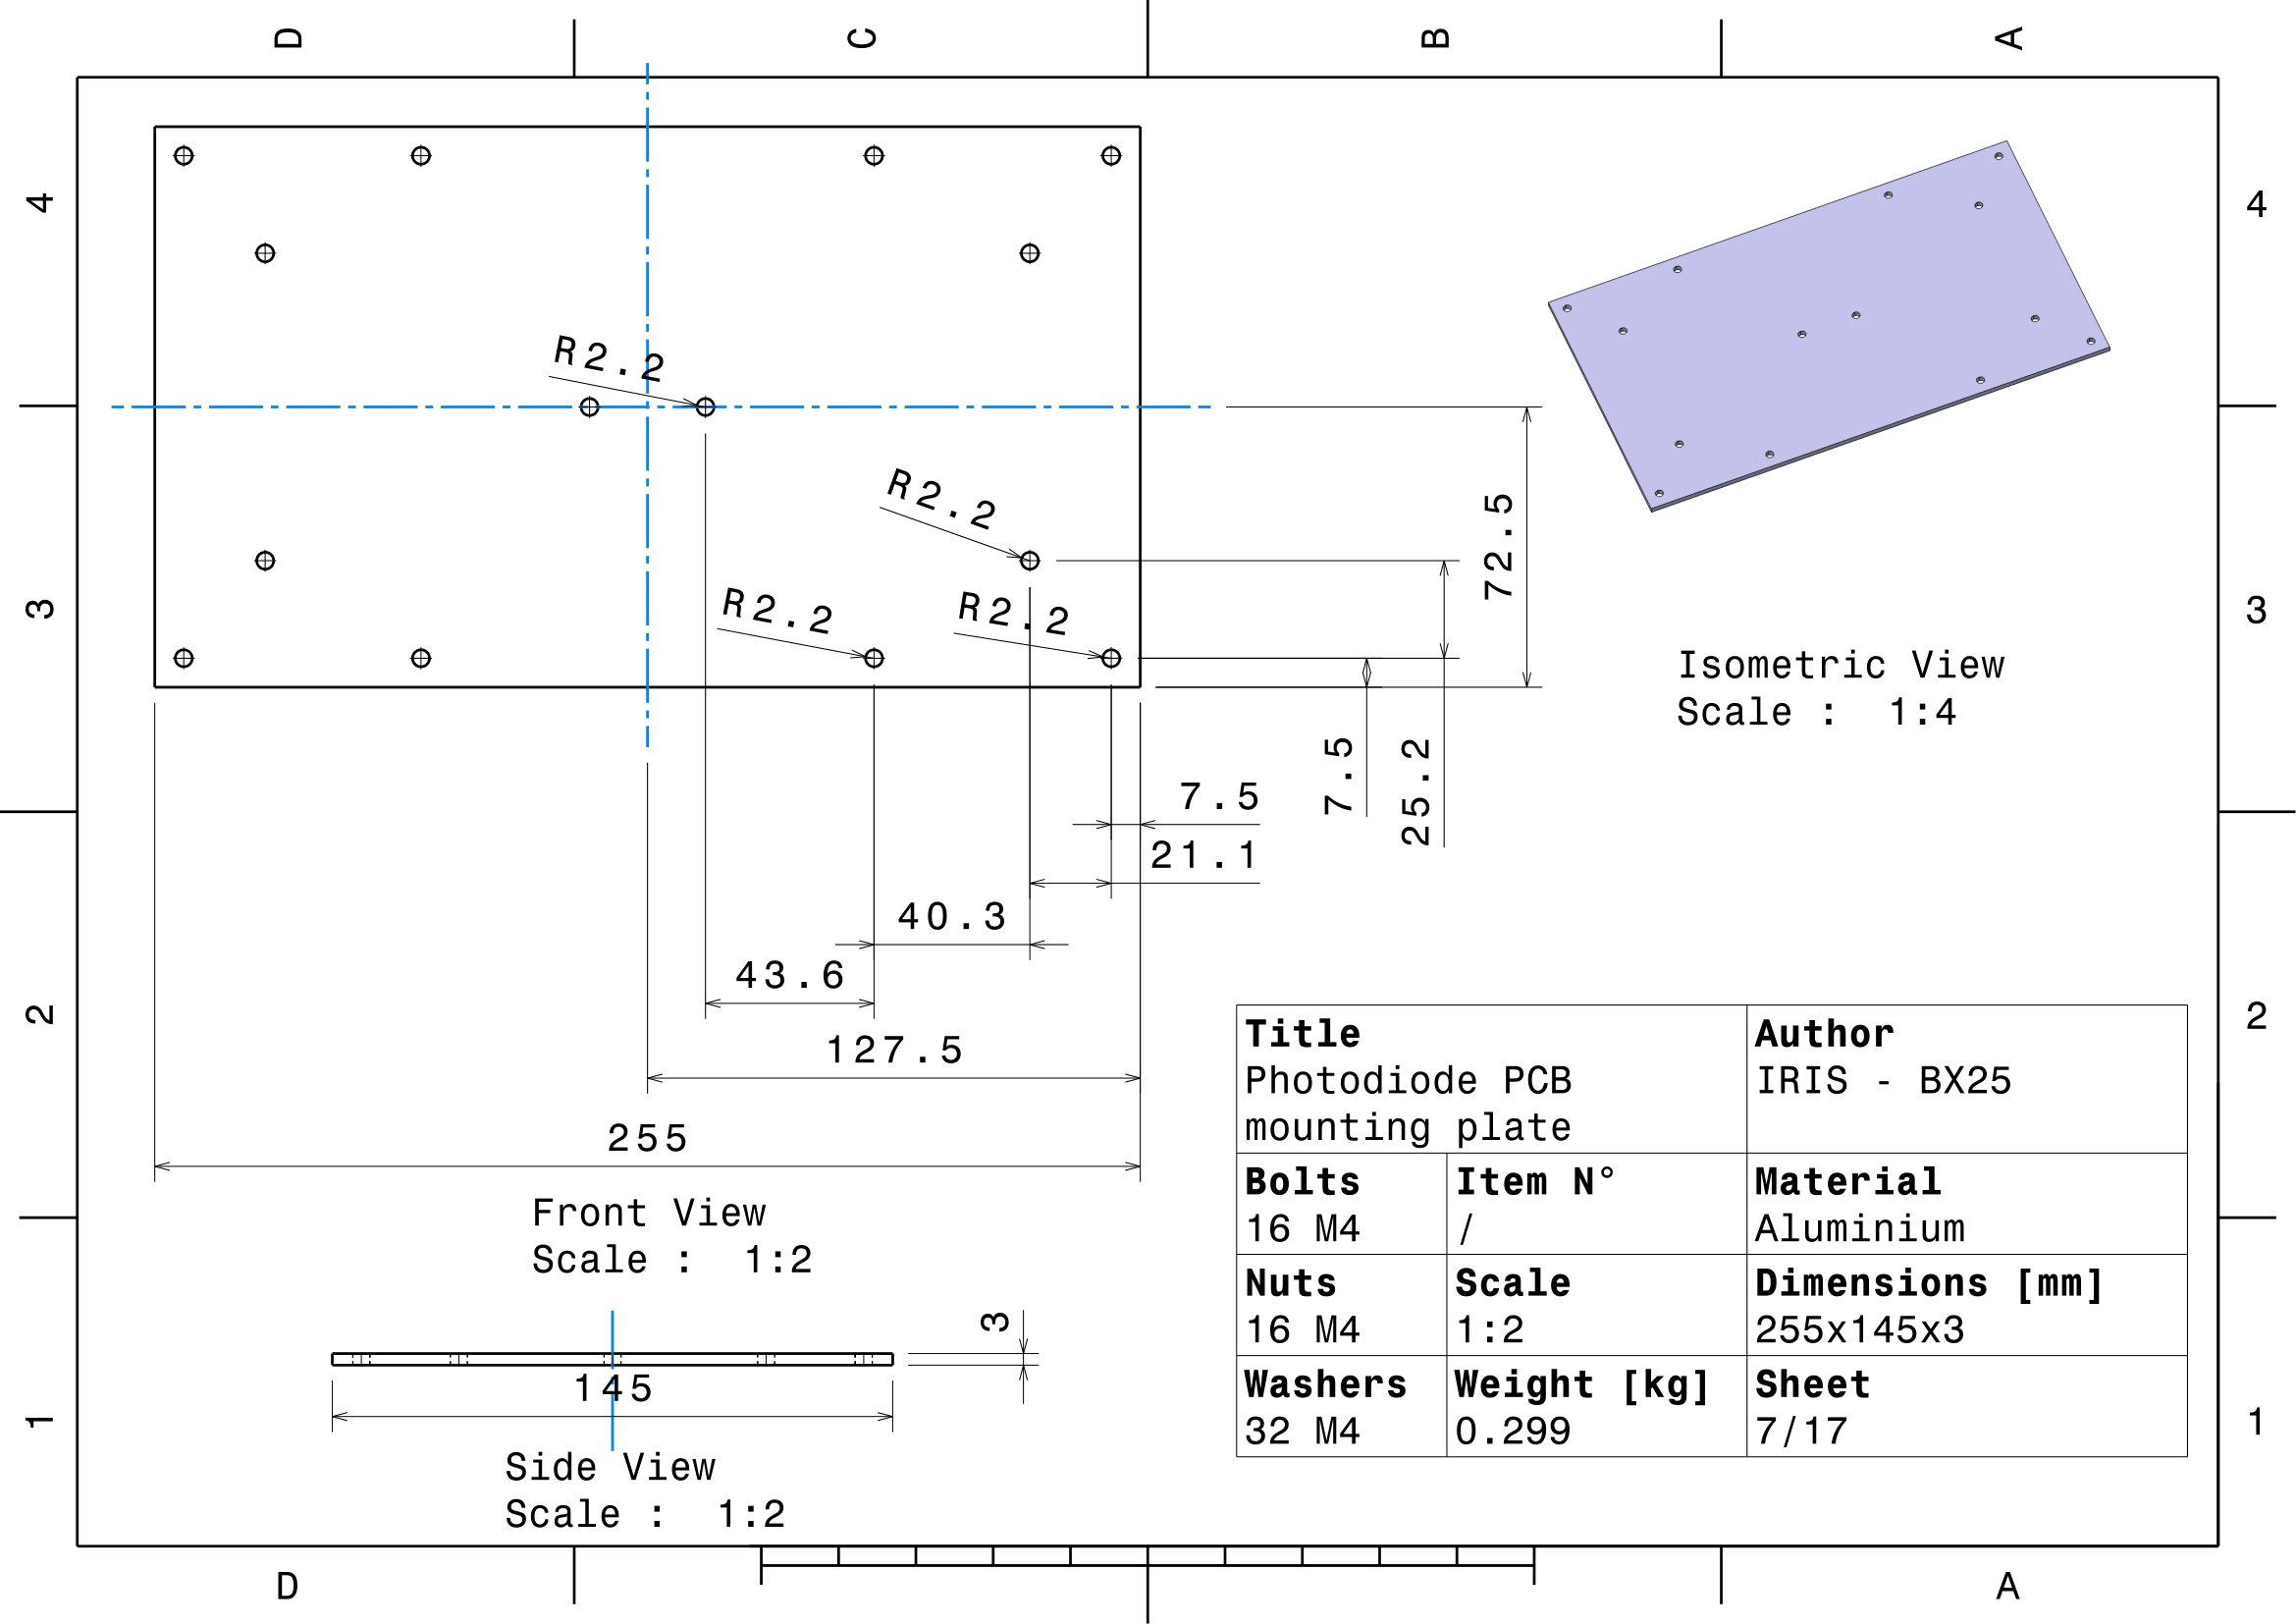 BX25_IRIS_SEDv32_Technical_Drawing-07